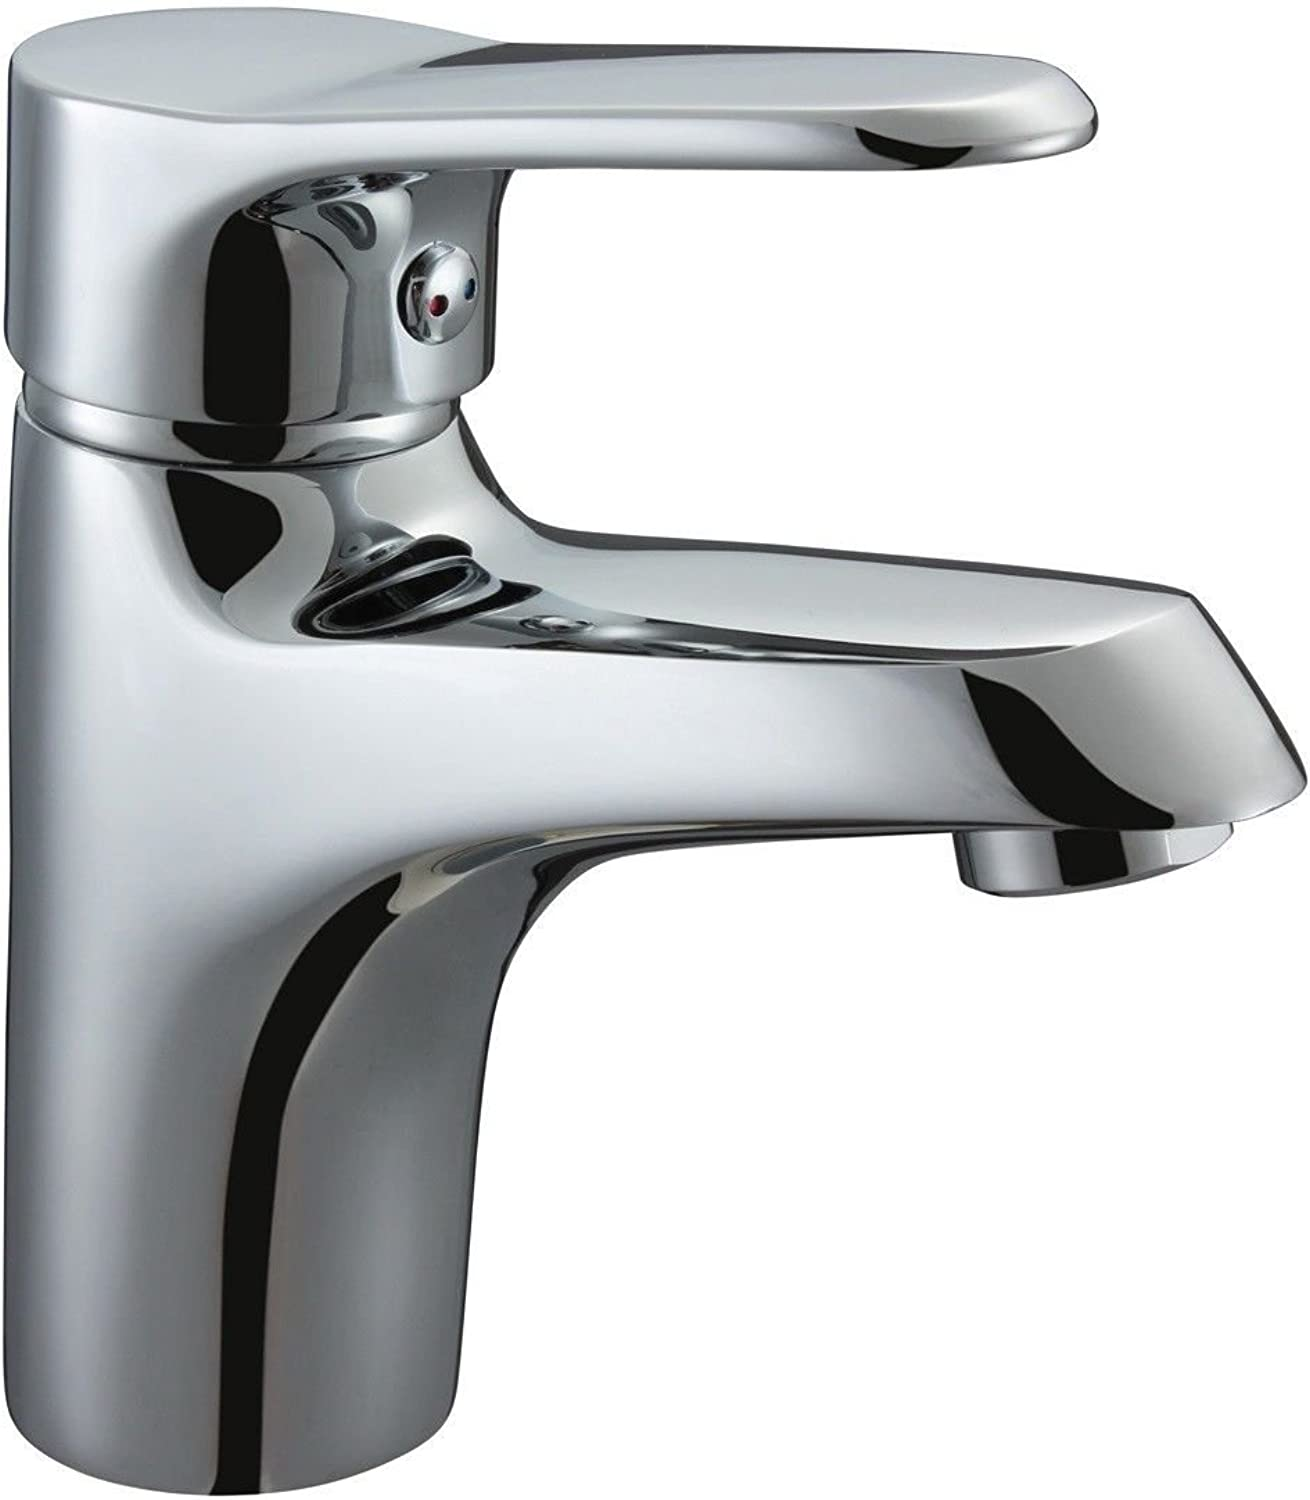 ETERNAL QUALITY Bathroom Sink Basin Tap Brass Mixer Tap Washroom Mixer Faucet Basin faucet hot and cold bath counter basin sink mixer Kitchen Sink Taps